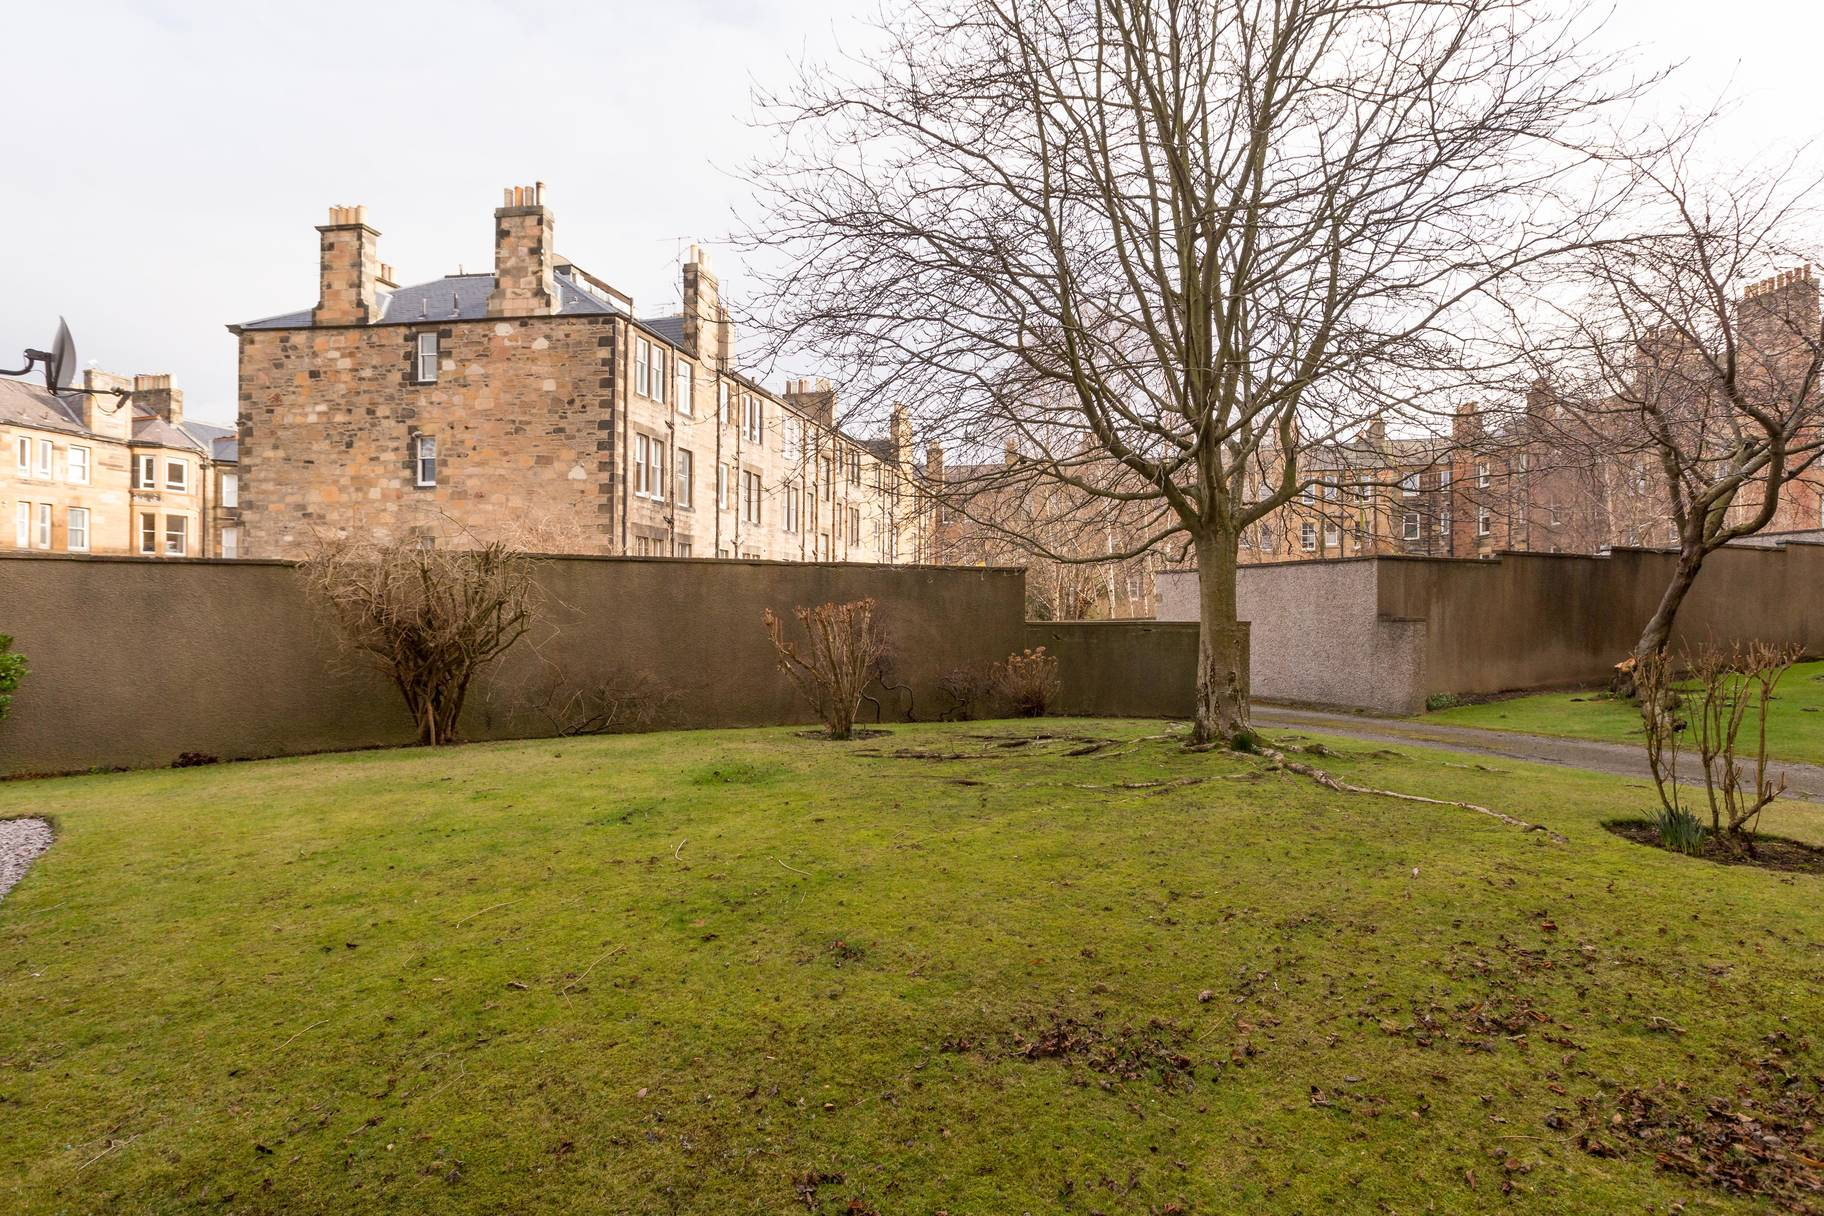 14/33 Ethel Terrace, Morningside, Edinburgh, EH10 5NA